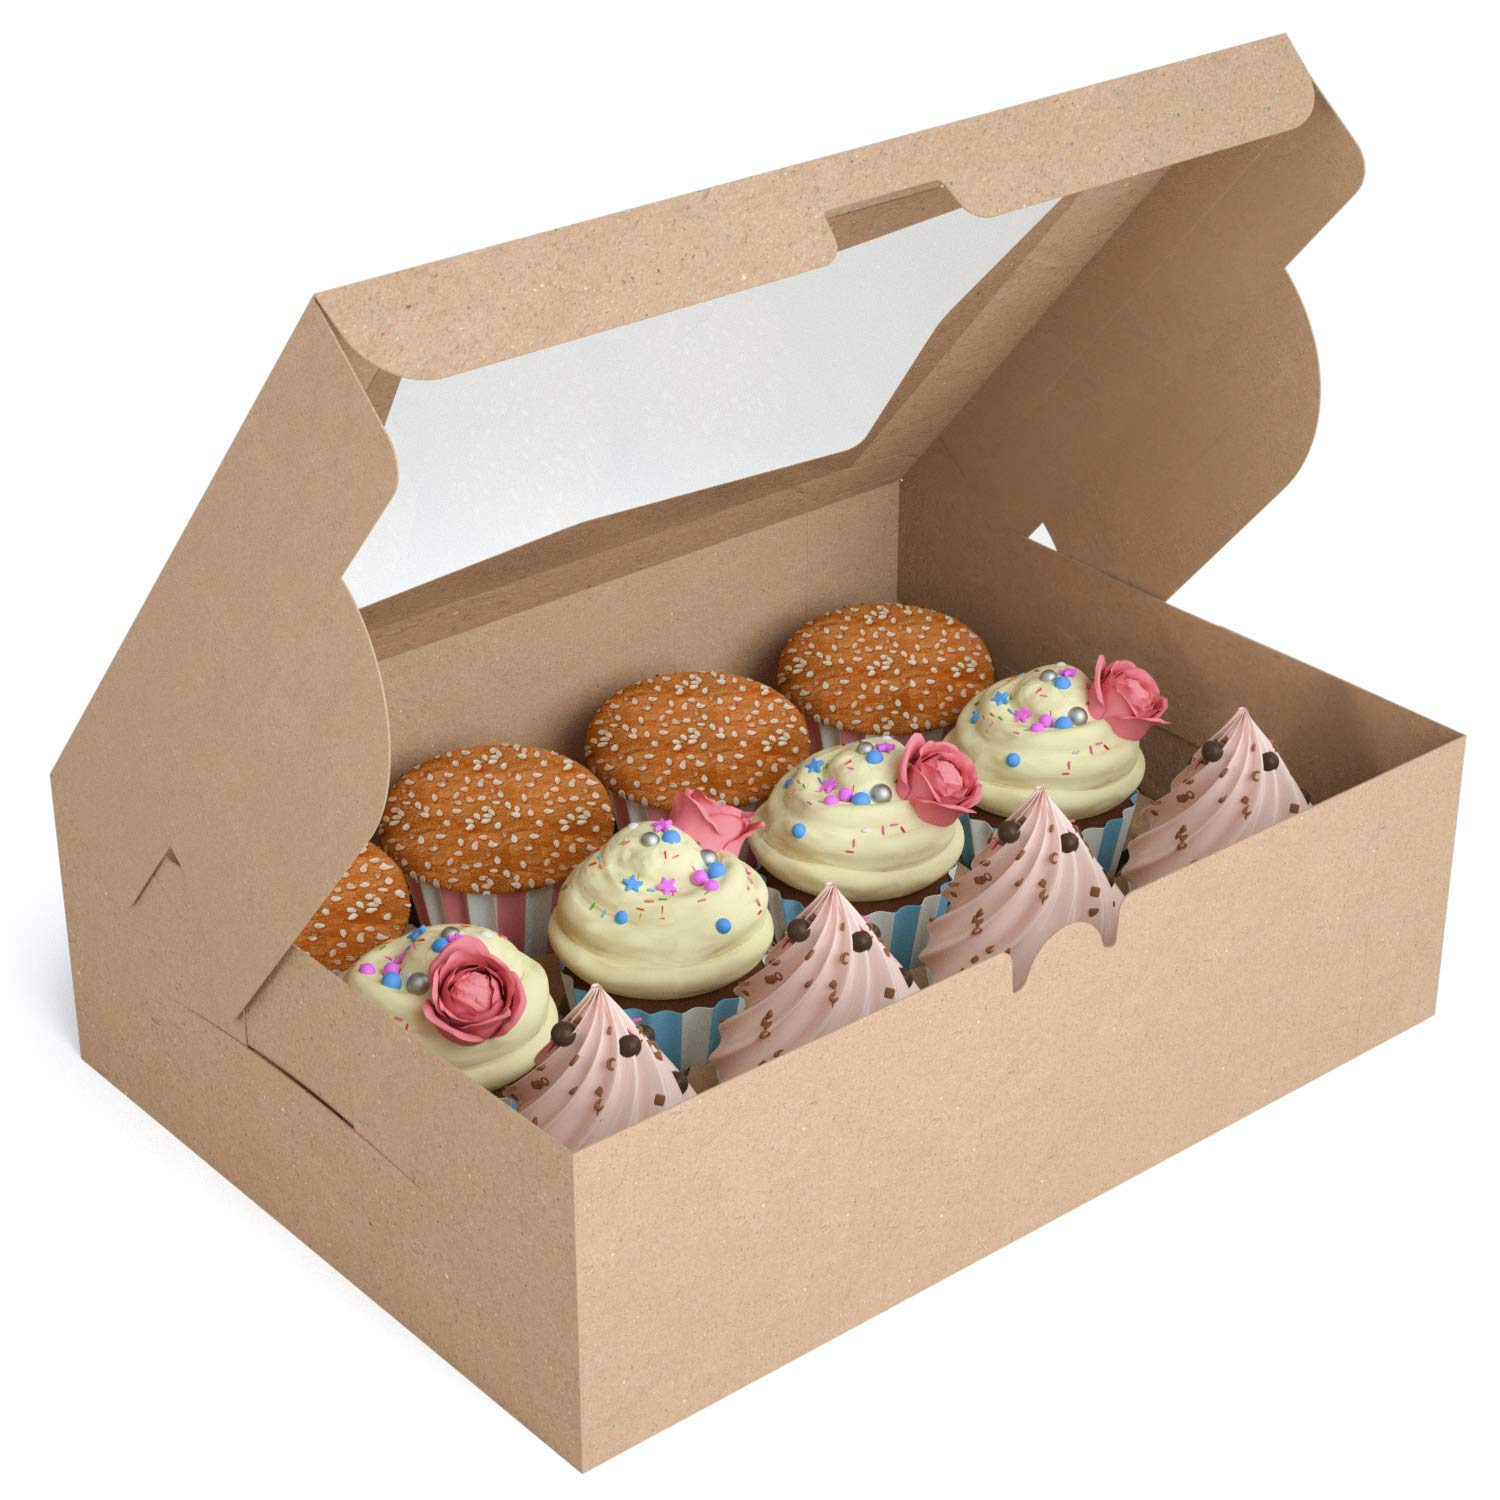 X-Chef Cupcake Boxes, Food Grade Kraft Cupcake Carrier with Inserts and Display Windows Fits 12 Cupcakes or Muffins,12 Packs 201077